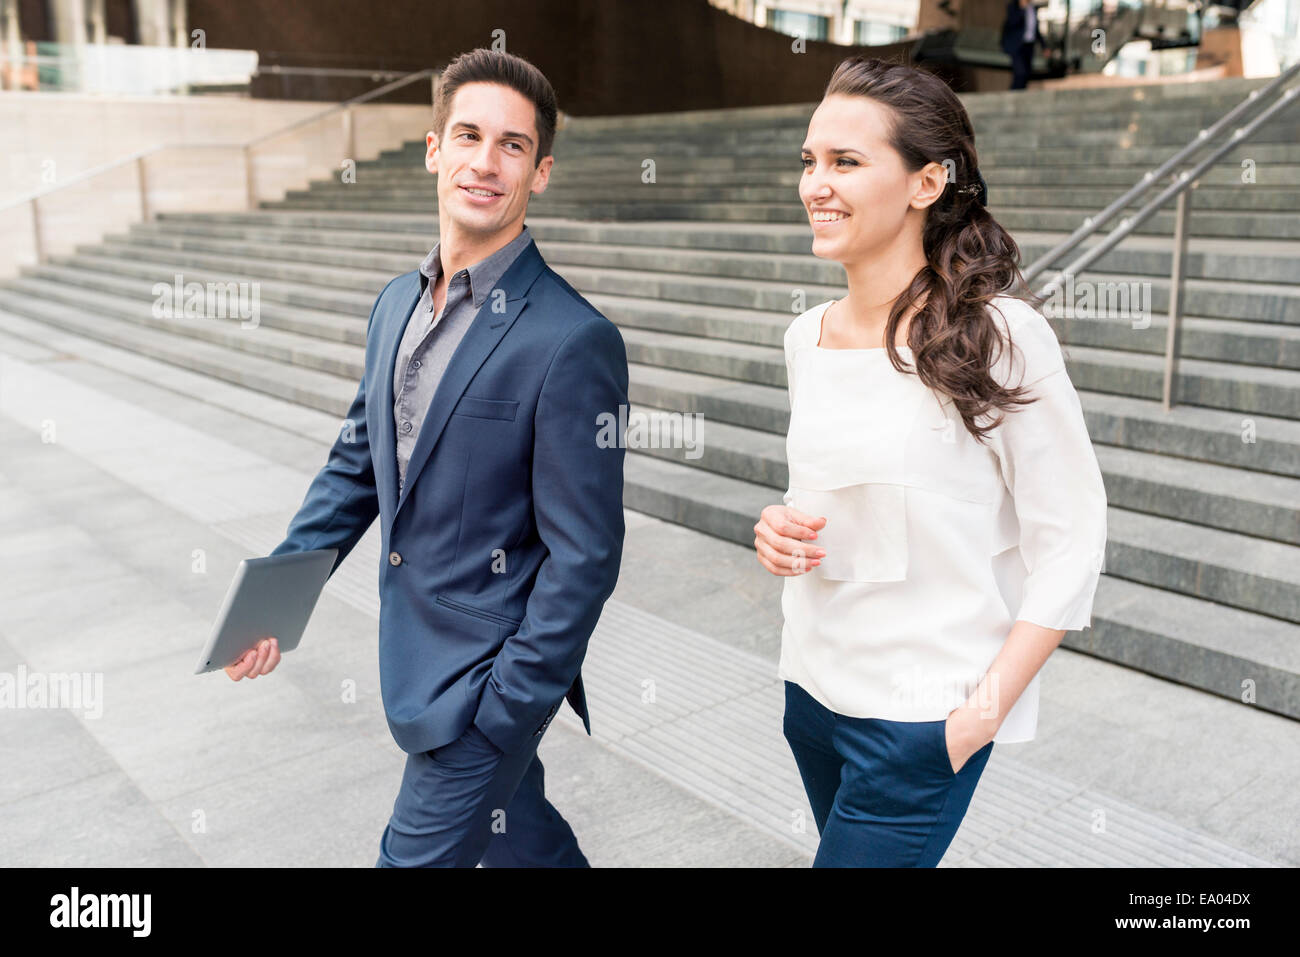 Young businessman and woman chatting whilst walking, London, UK - Stock Image